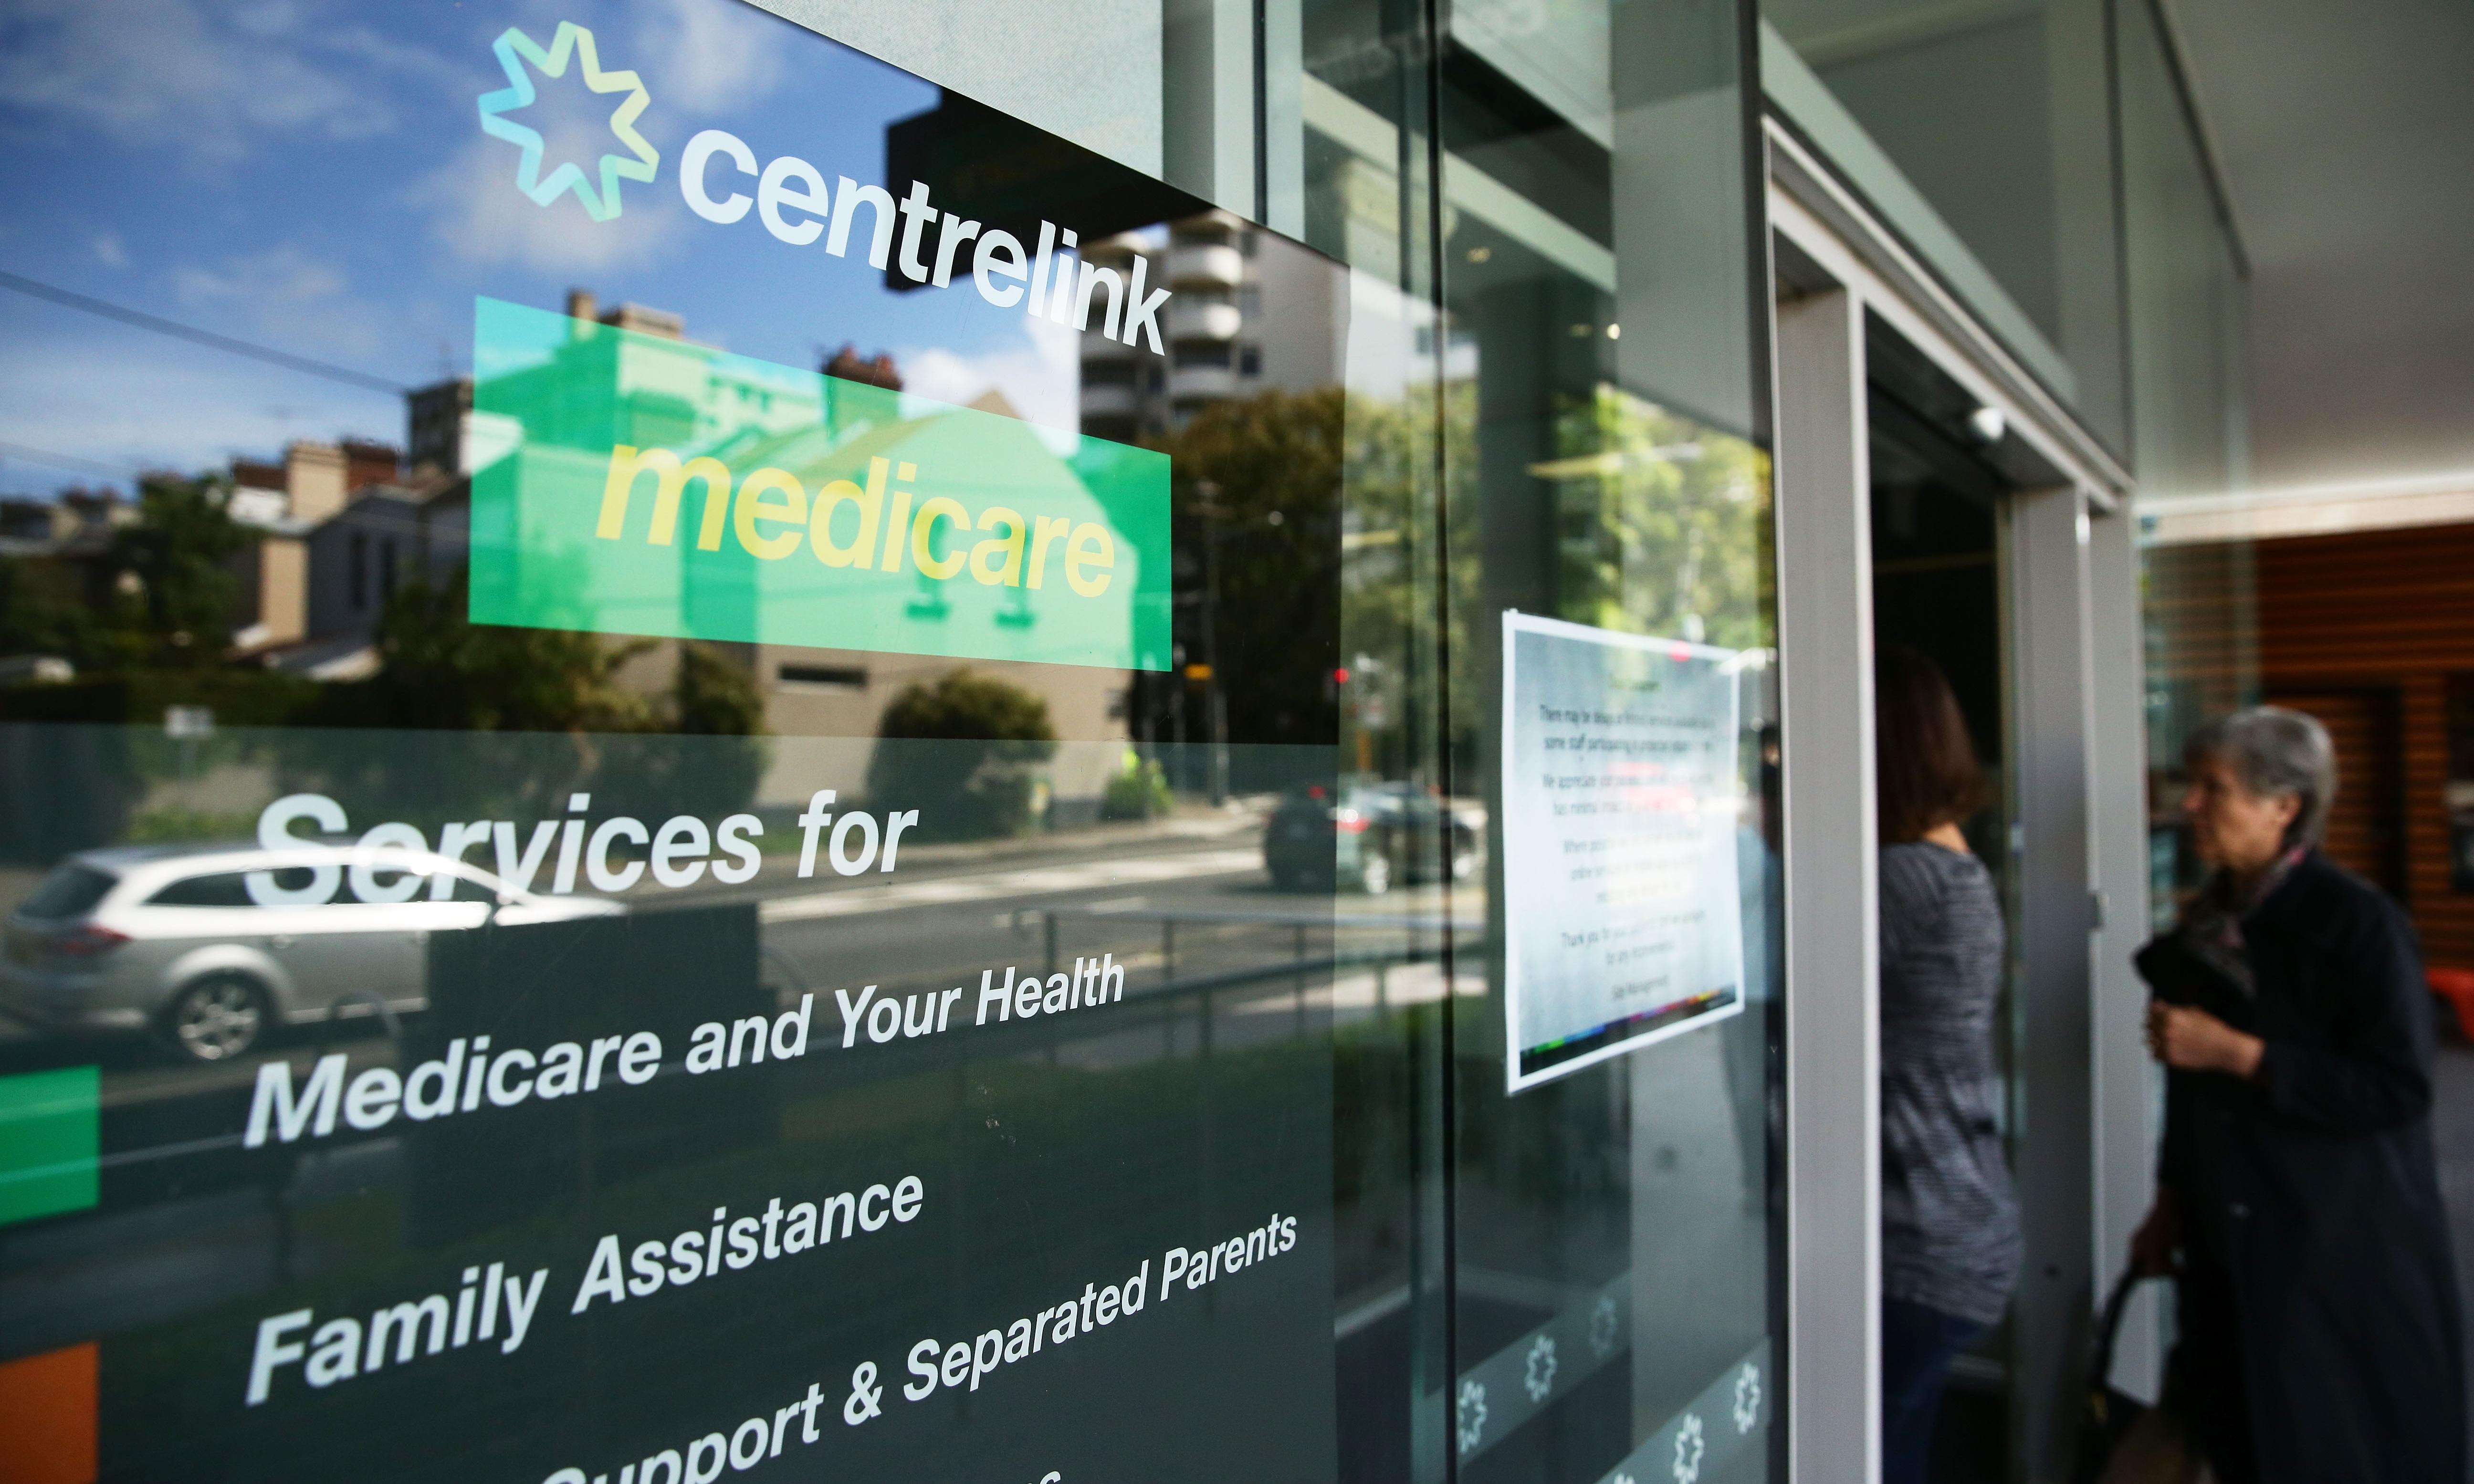 Blind Centrelink officer says he was shamed and sacked for slow work